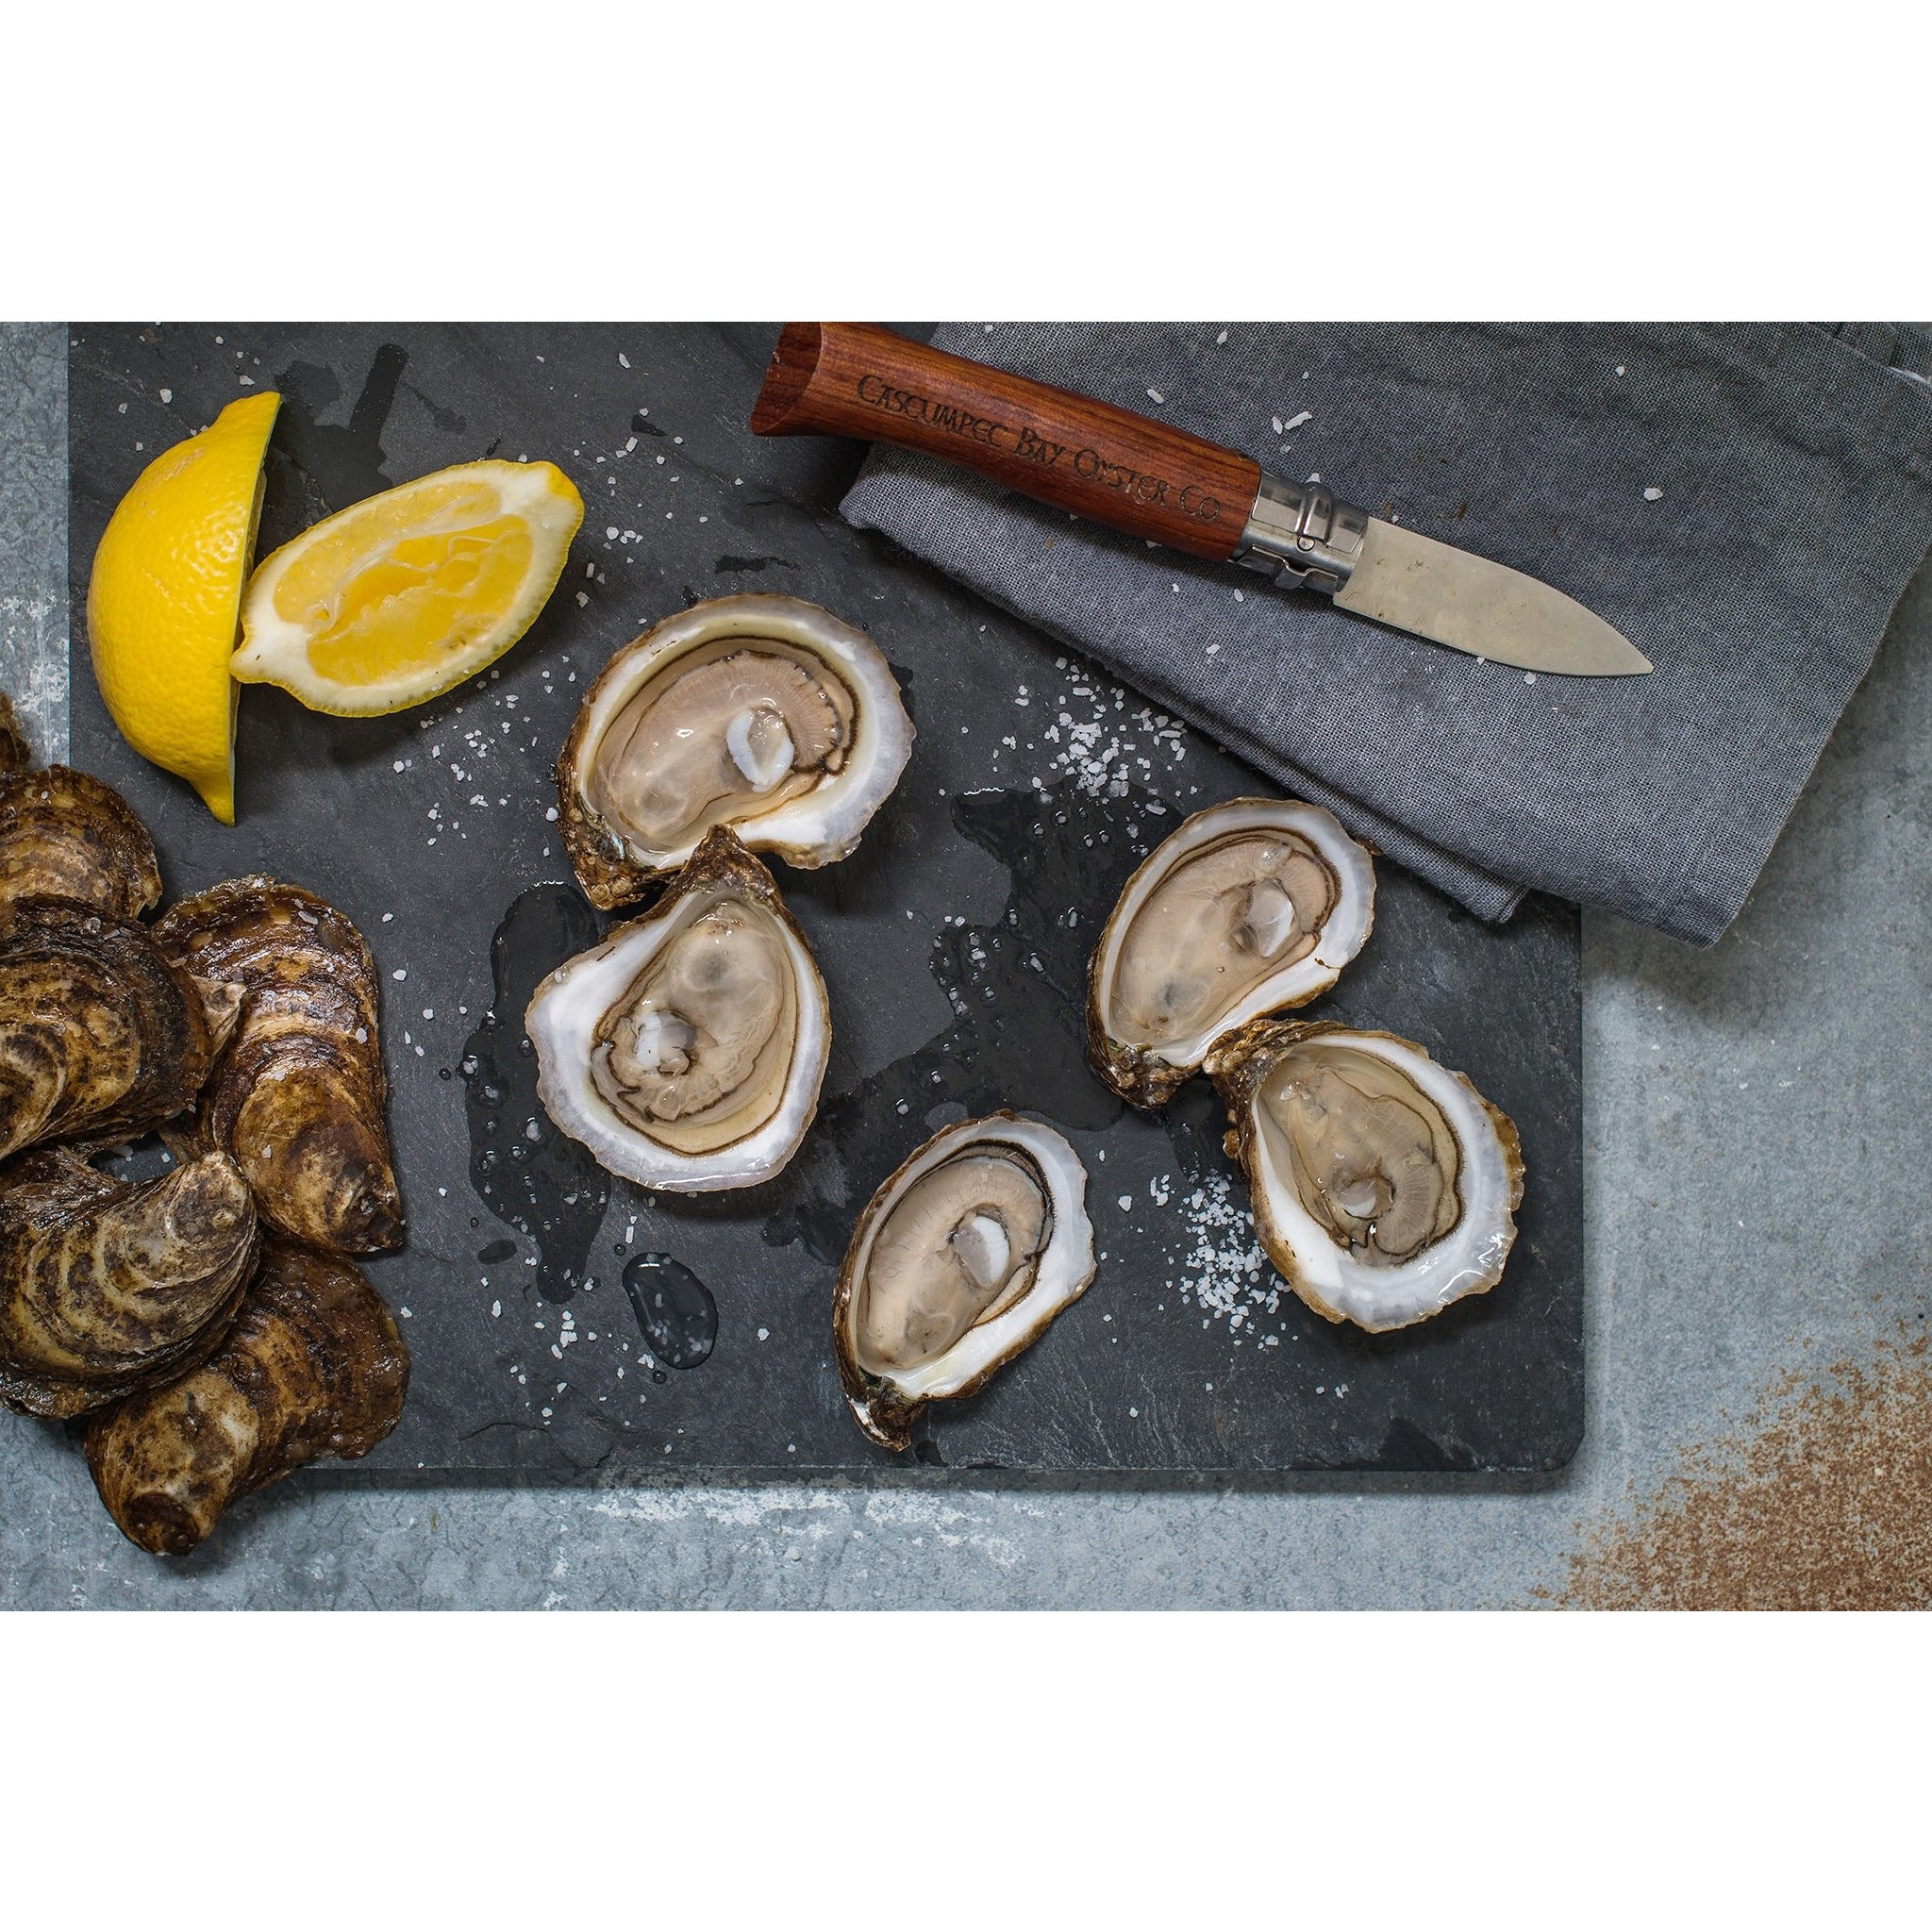 Foxley river Oysters